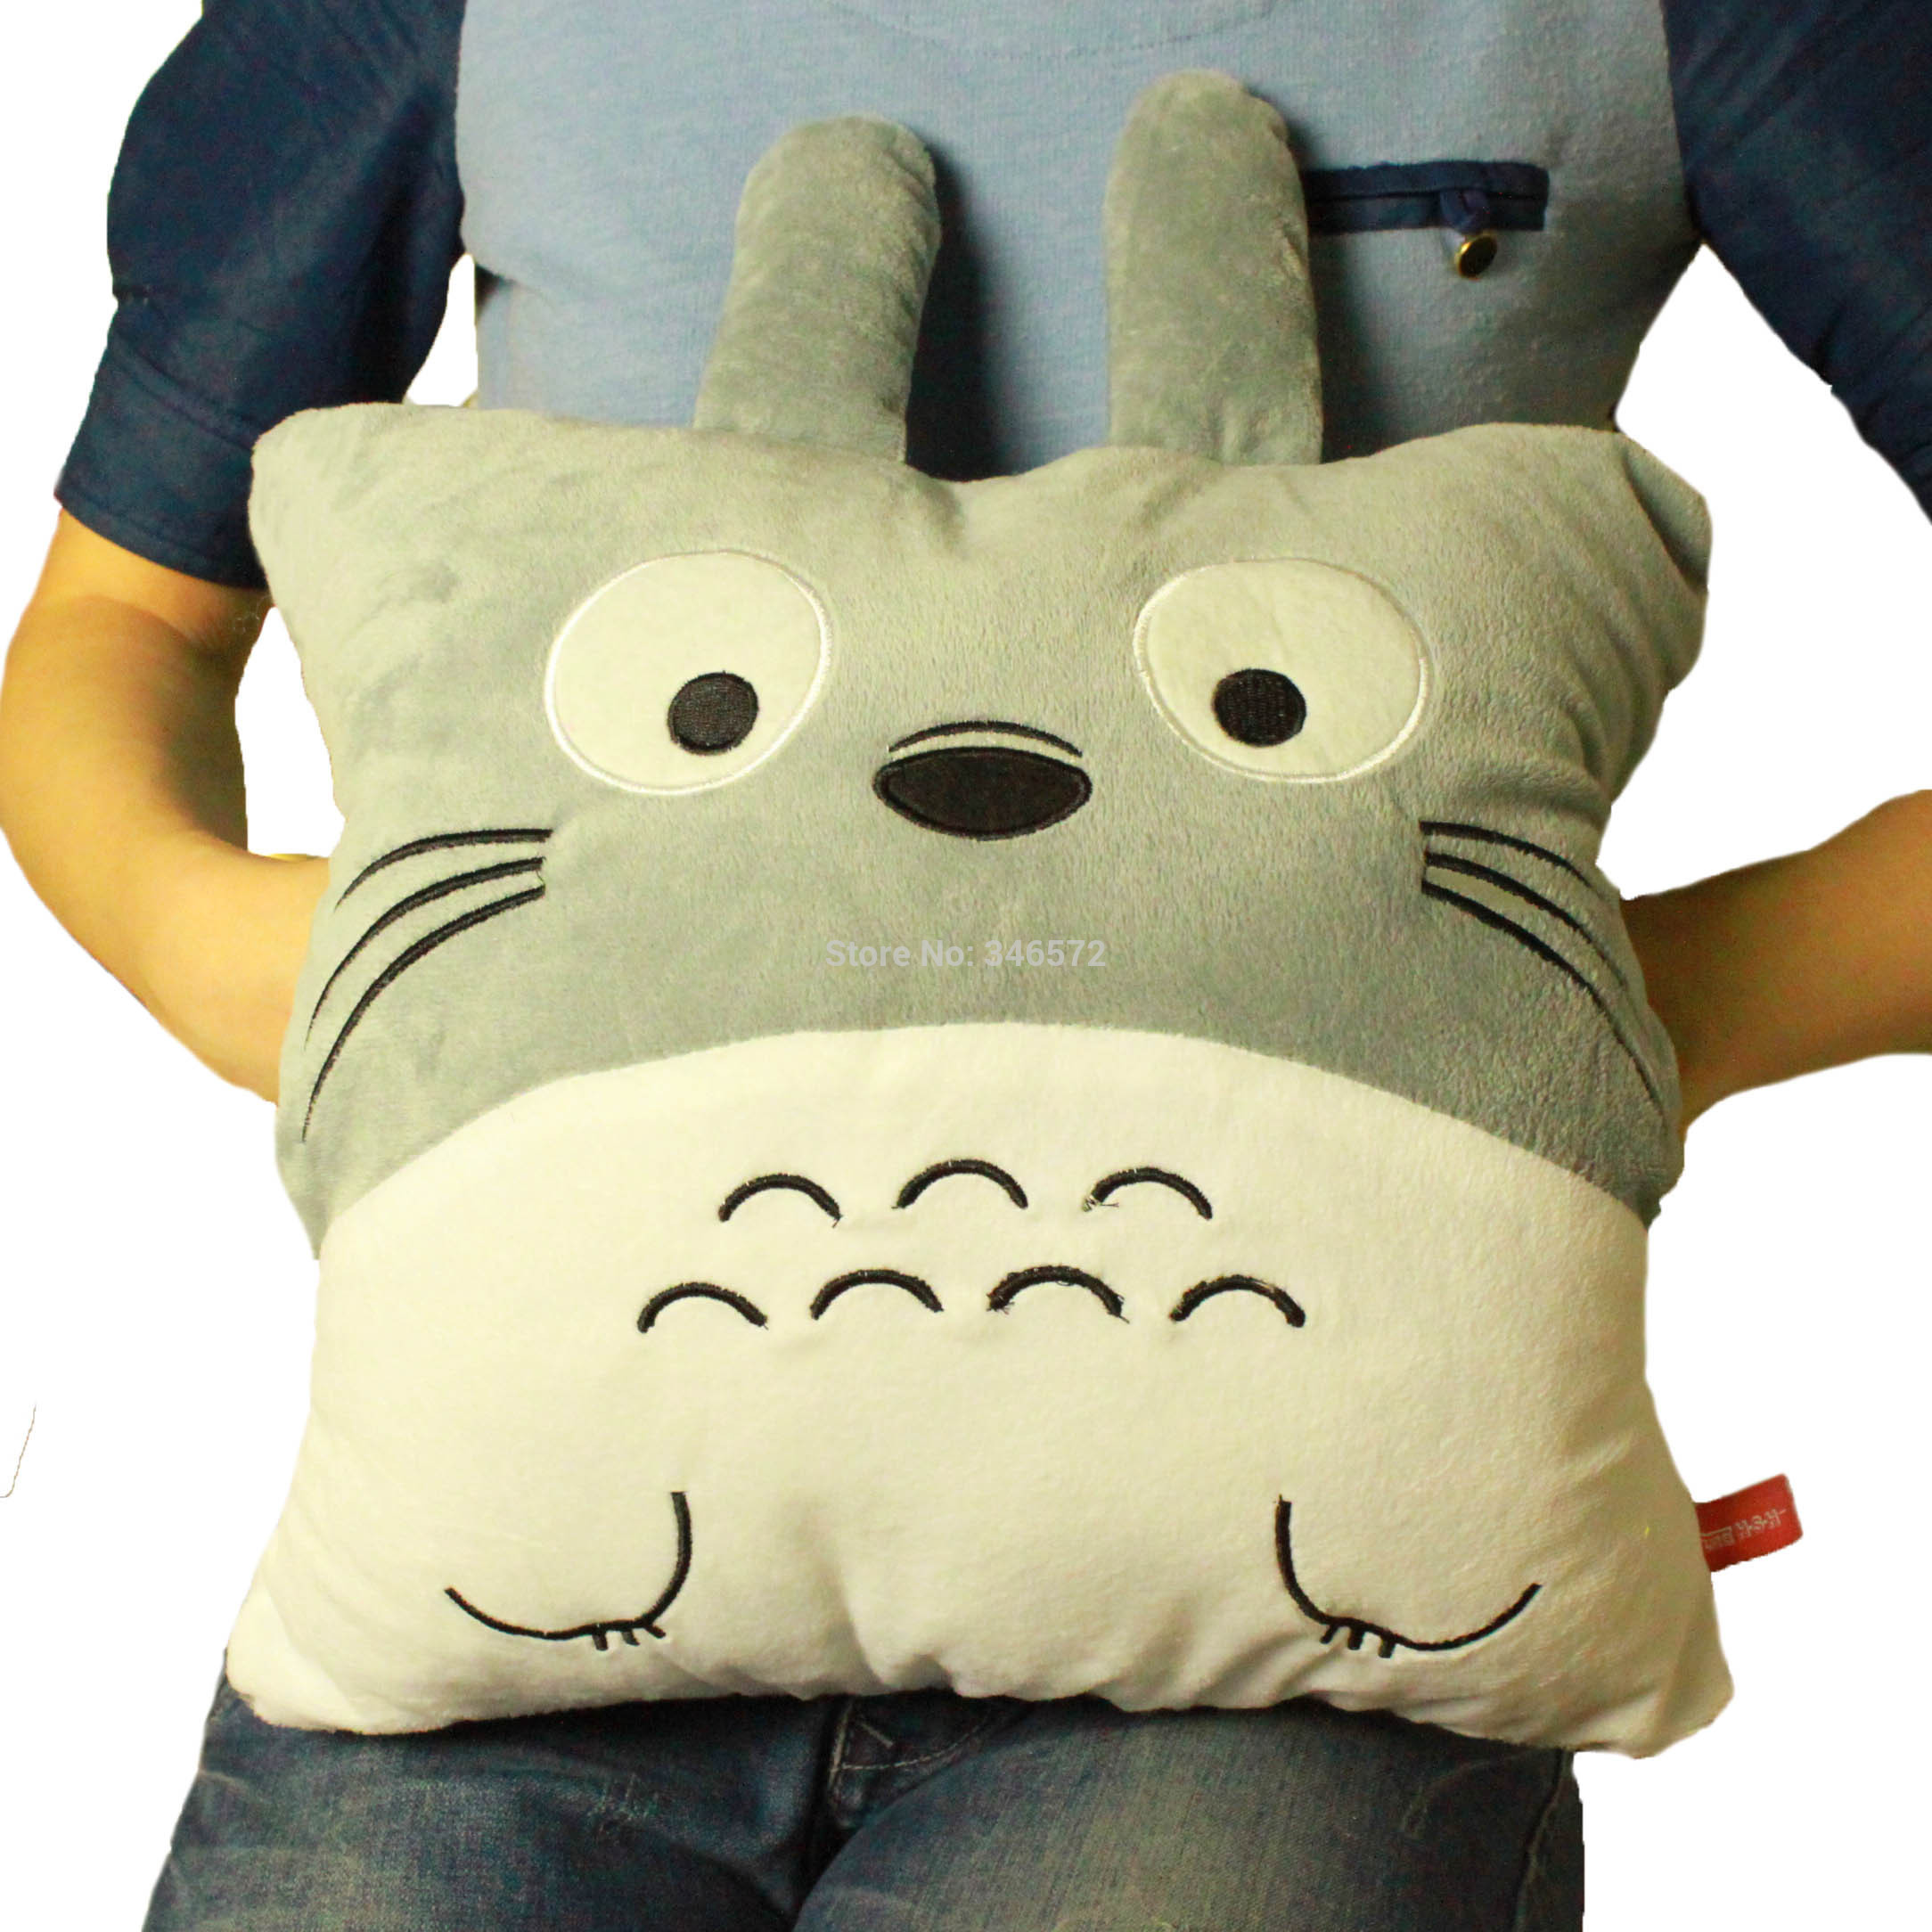 Free shipping totoro hand pillow hand warmer plush toy cloth doll hand po Wholesale(China (Mainland))